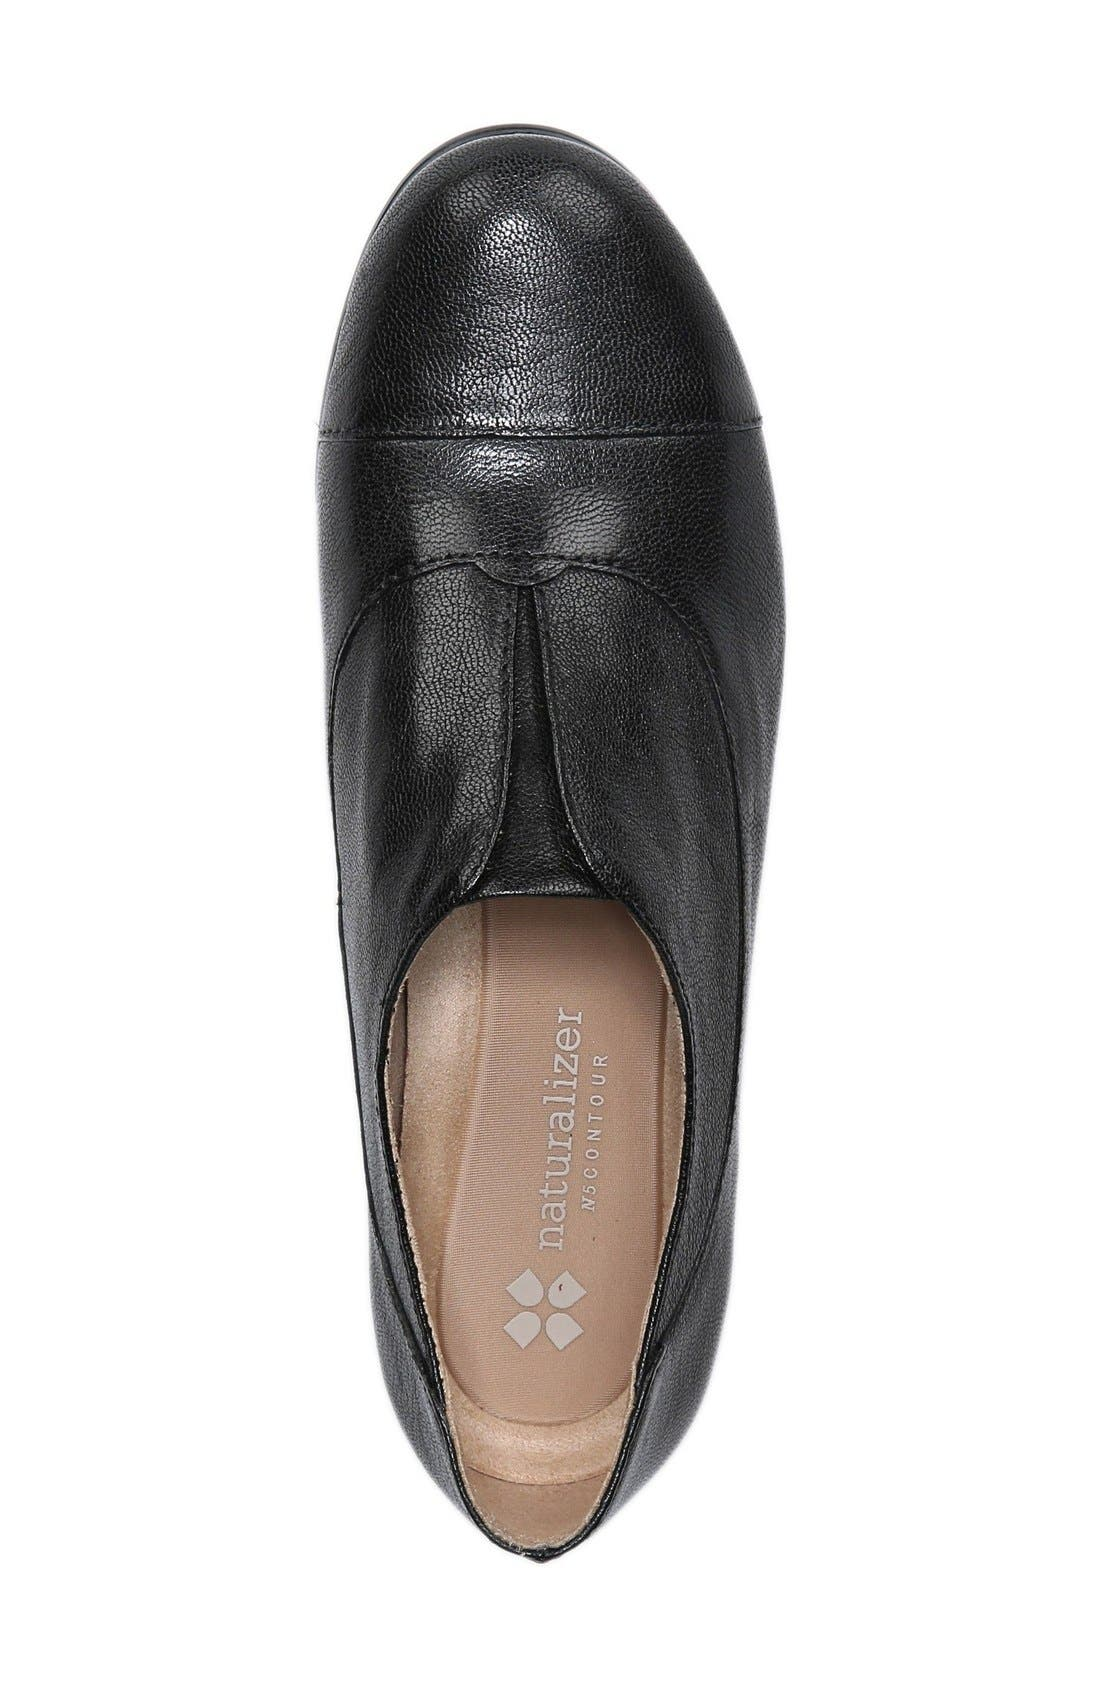 NATURALIZER,                             'Carabell' Laceless Oxford,                             Alternate thumbnail 4, color,                             001